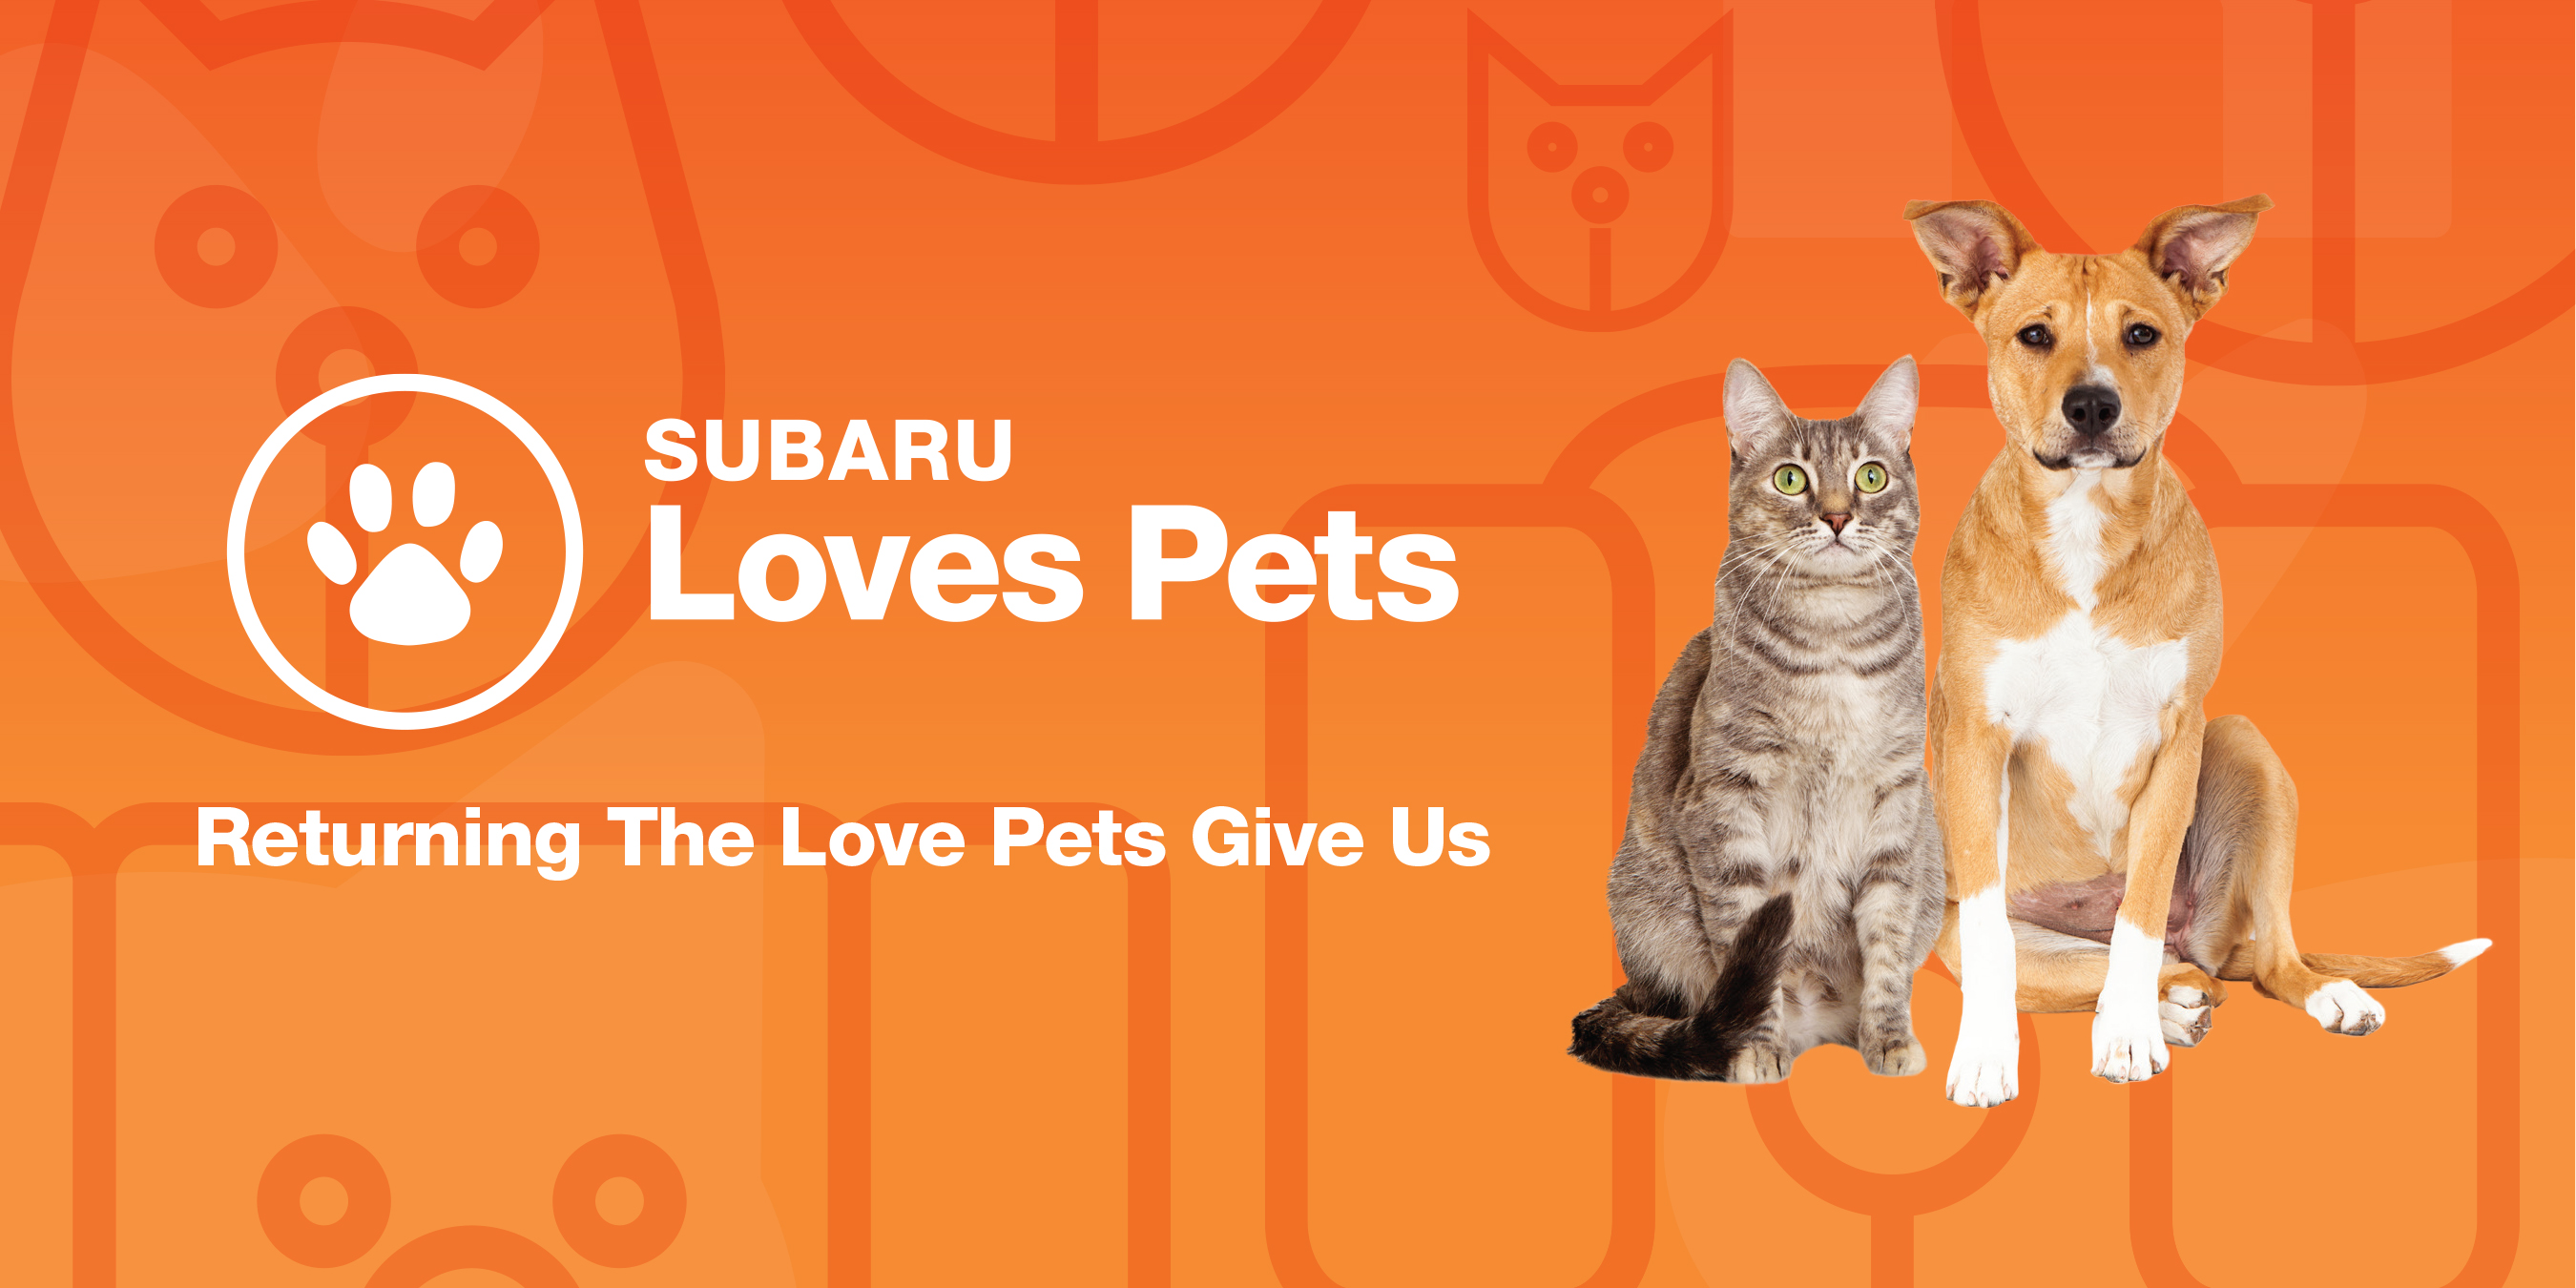 Thelen Subaru in Bay City Loves Pets!